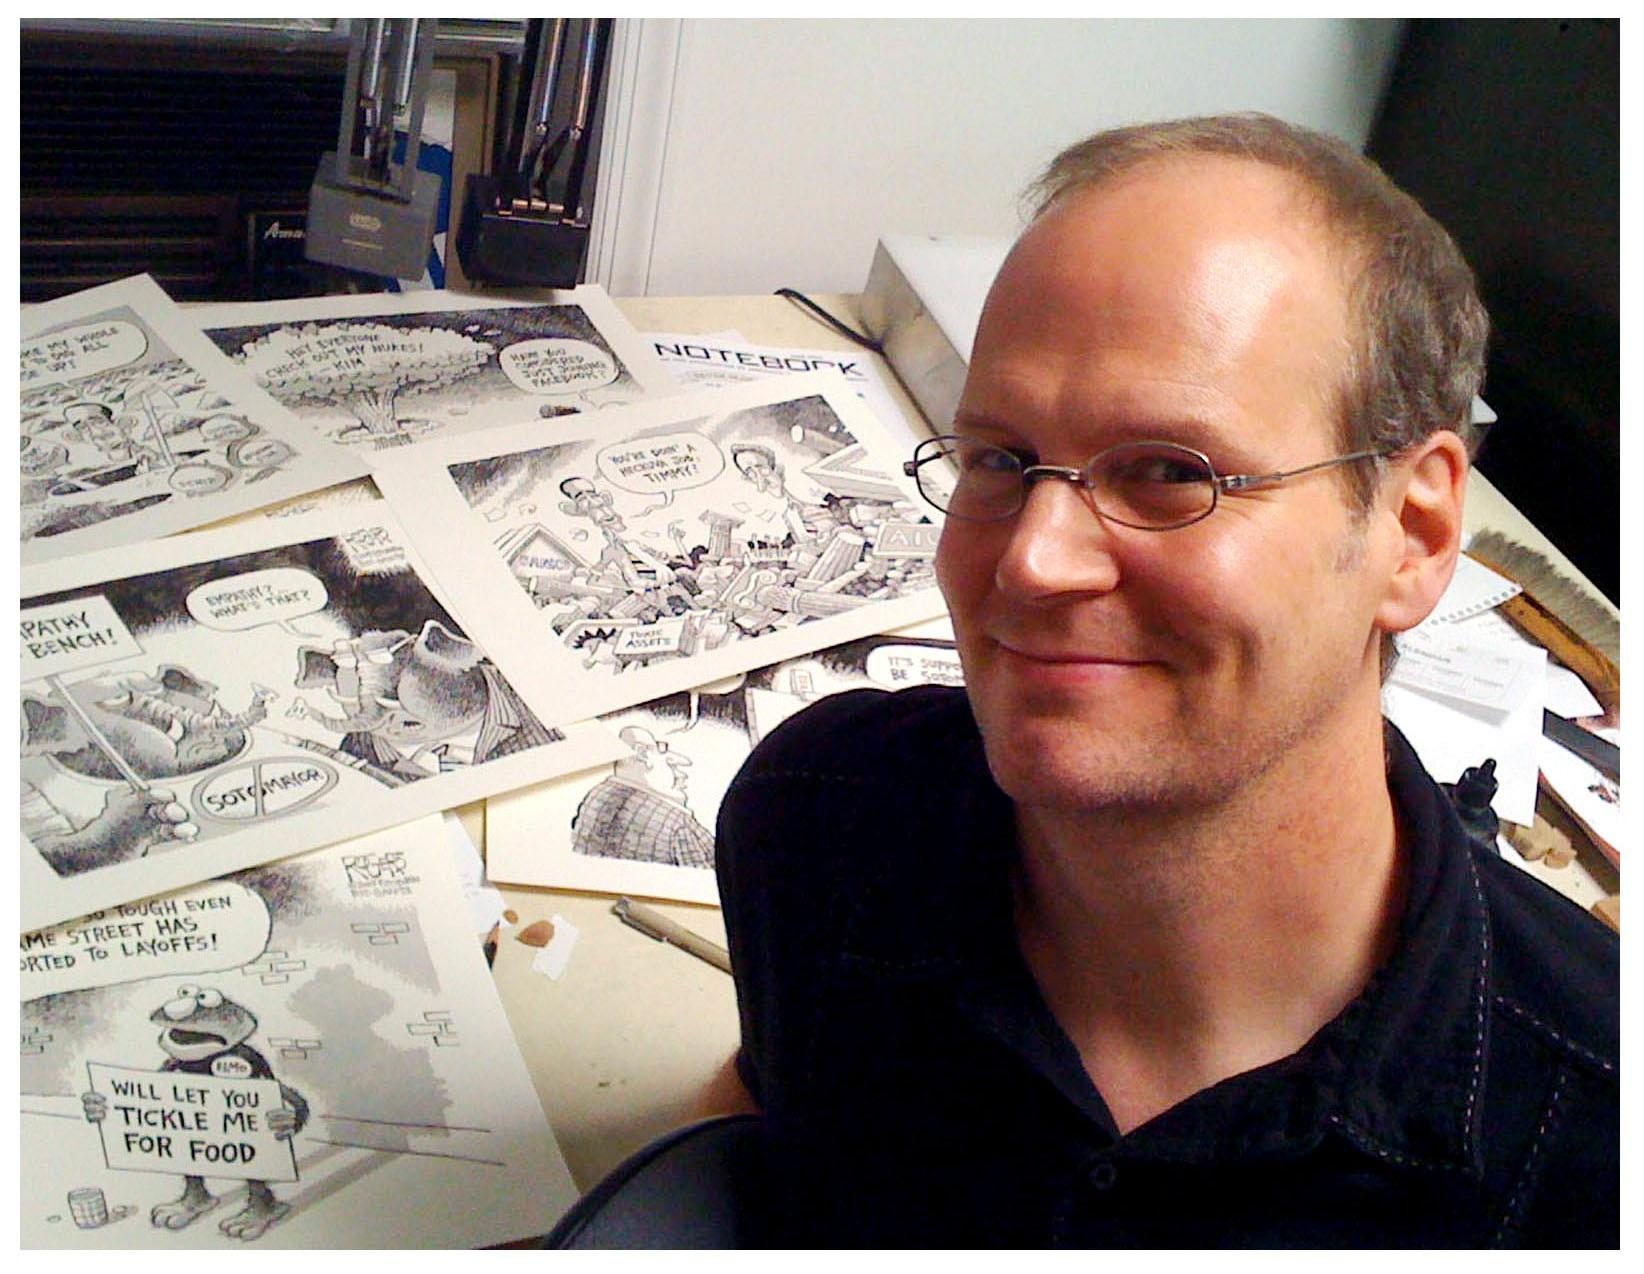 Cartoonist who cited political conflicts with paper is fired